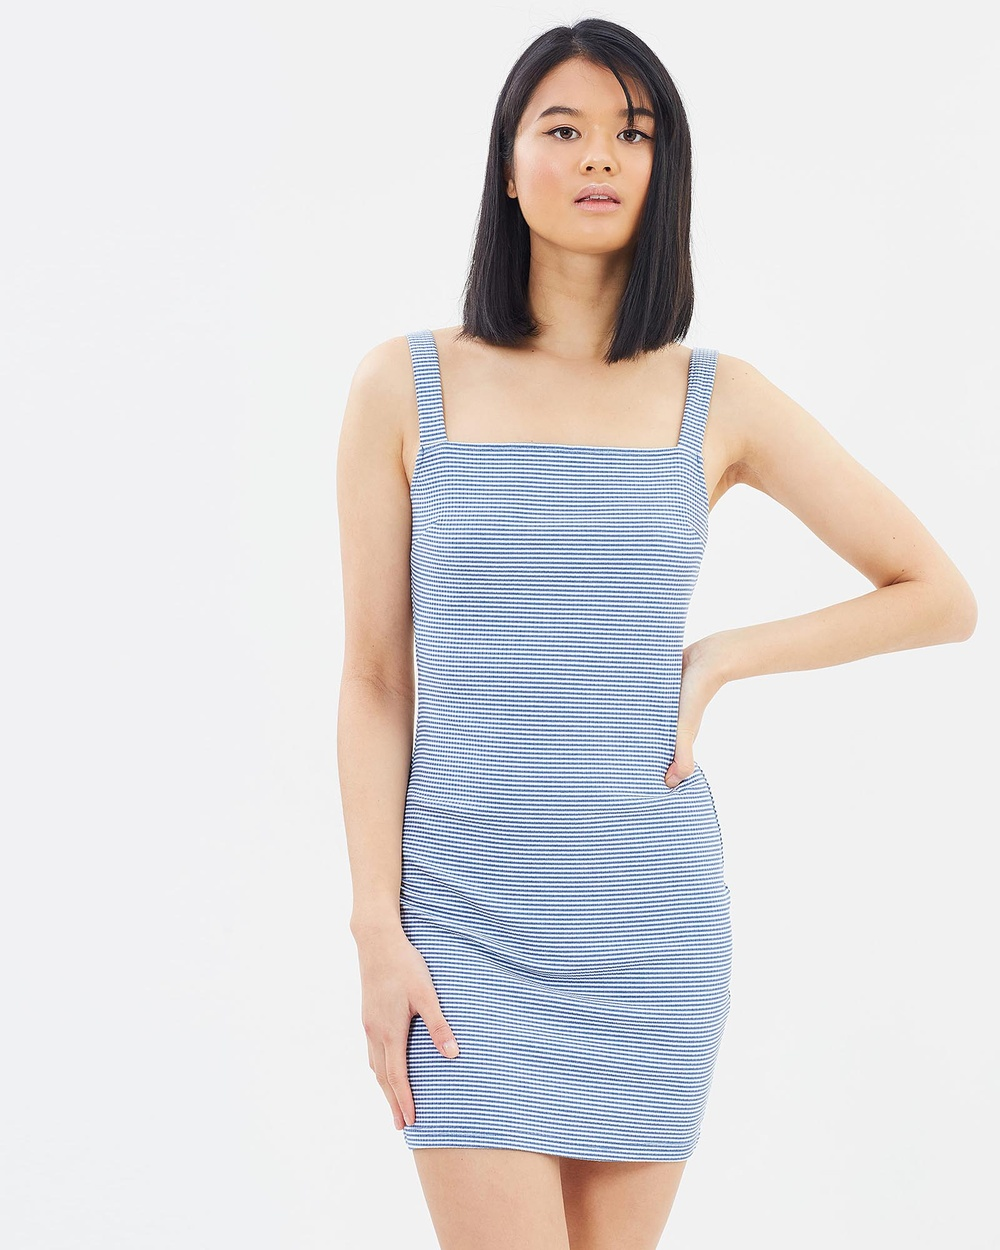 Otto Mode New Elements Dress Bodycon Dresses Blue Stripe New Elements Dress